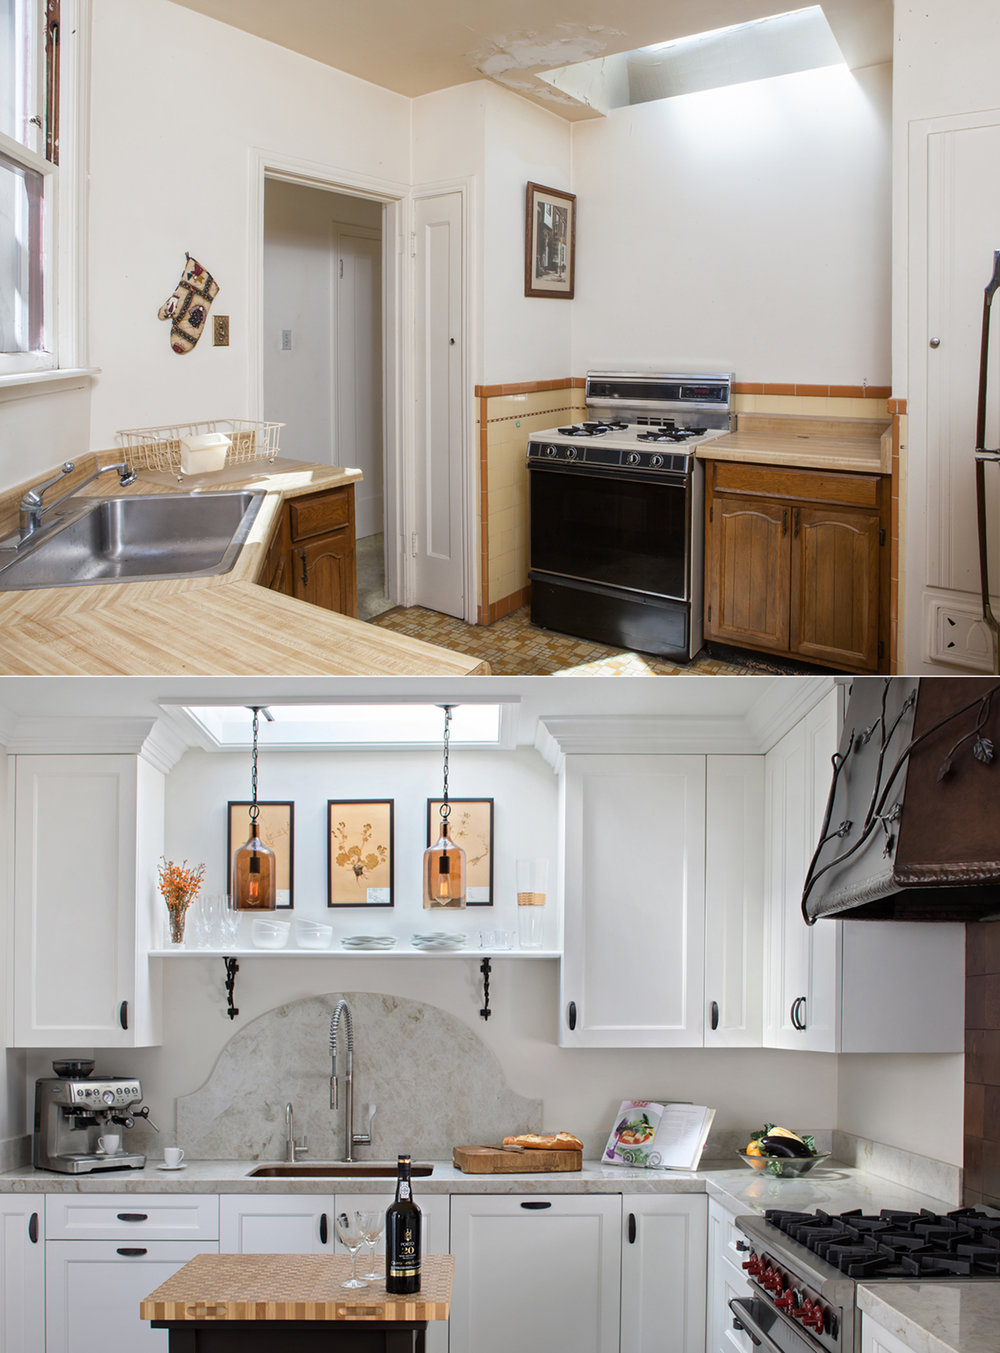 kitchen_beforeandafter.jpg